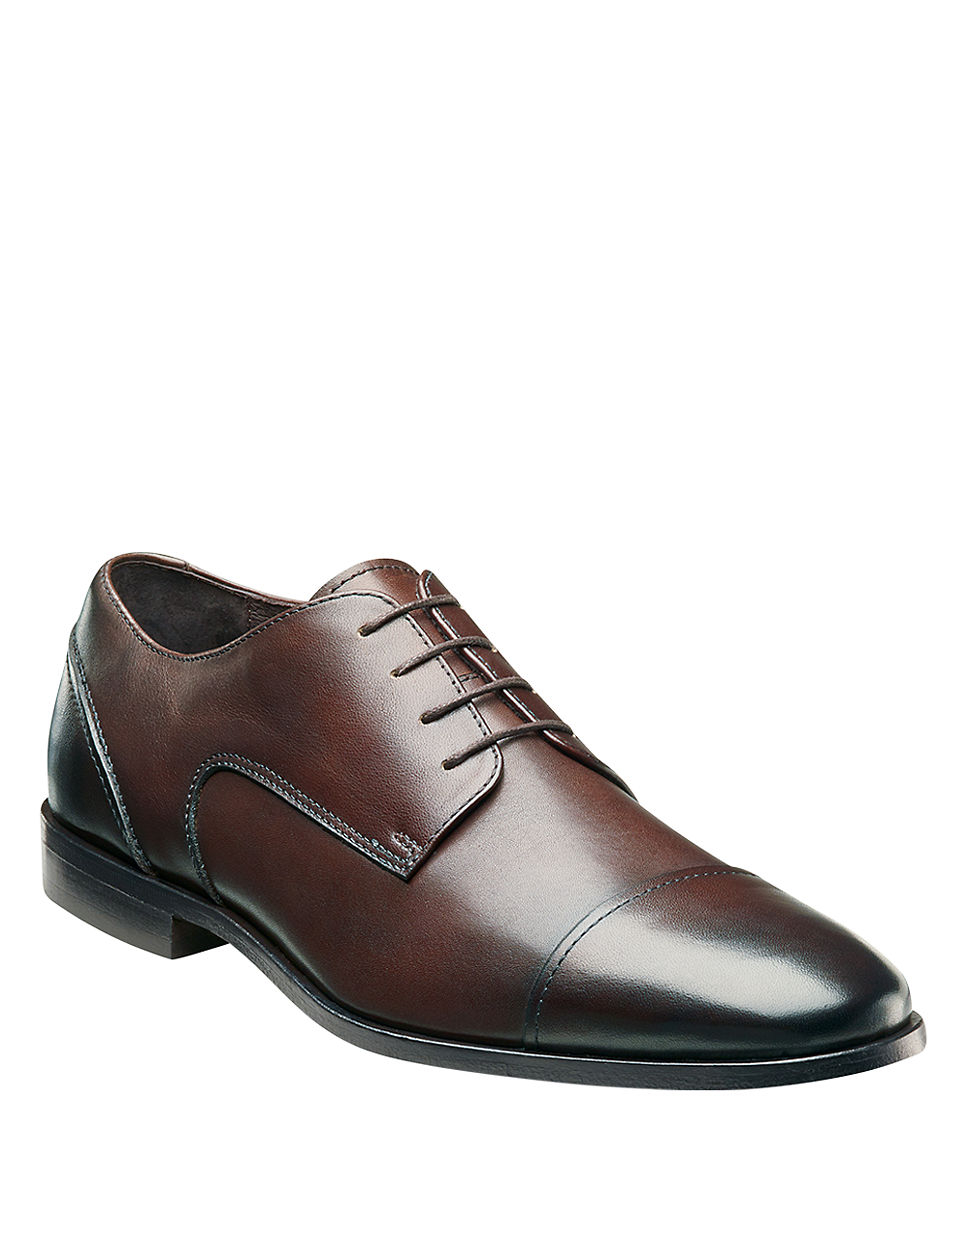 Florsheim Jet Cap Toe Lace Up Shoes